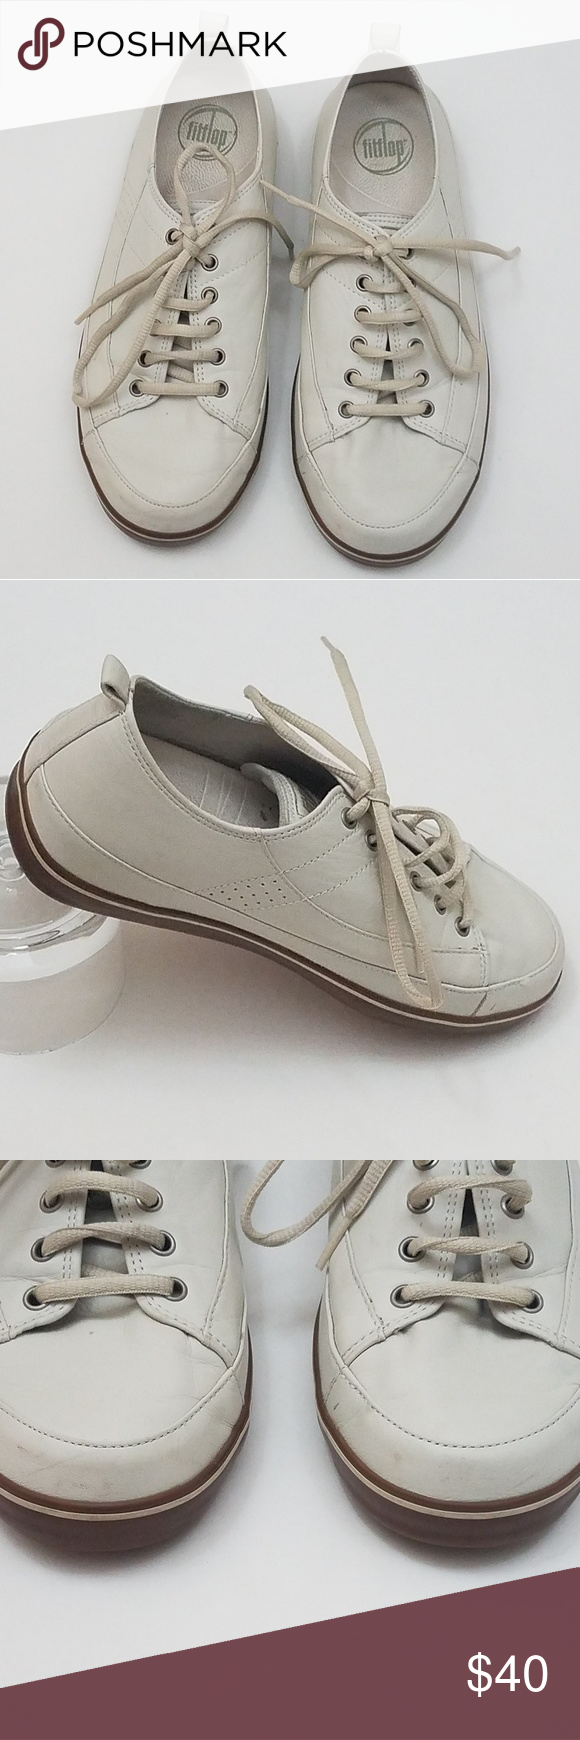 87ed1887d Fitflop Supertone White Leather Trainers Size 8 Fitflop Supertone Women s  Great White Leather Trainers Shoes Size